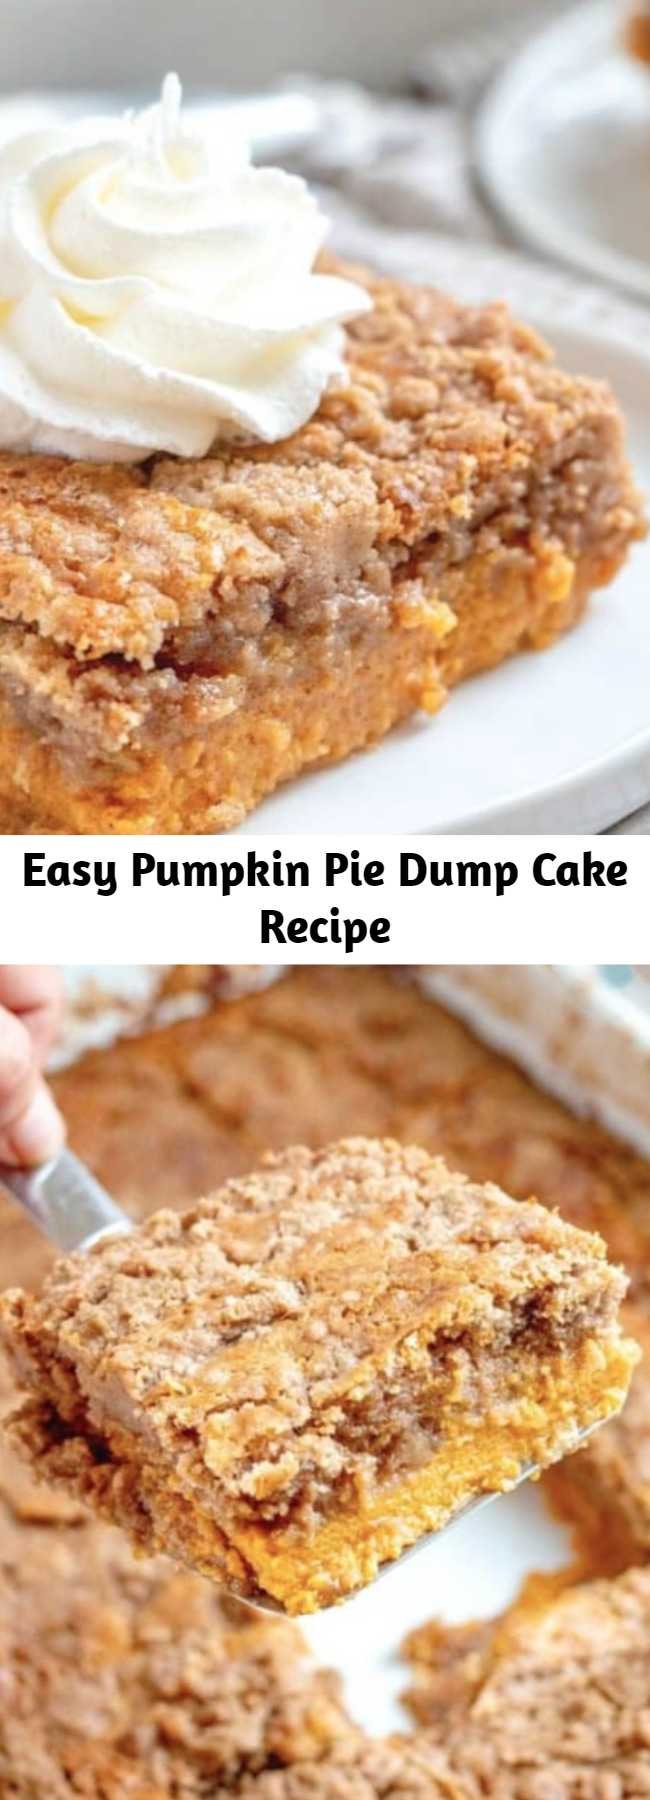 Easy Pumpkin Pie Dump Cake Recipe - Pumpkin Pie Dump Cake gets it's name by dumping the ingredients into the baking dish. It is like a pumpkin pie and a spice cake all in one! #Pumpkin #Pie #DumpCake #Fall #Dessert